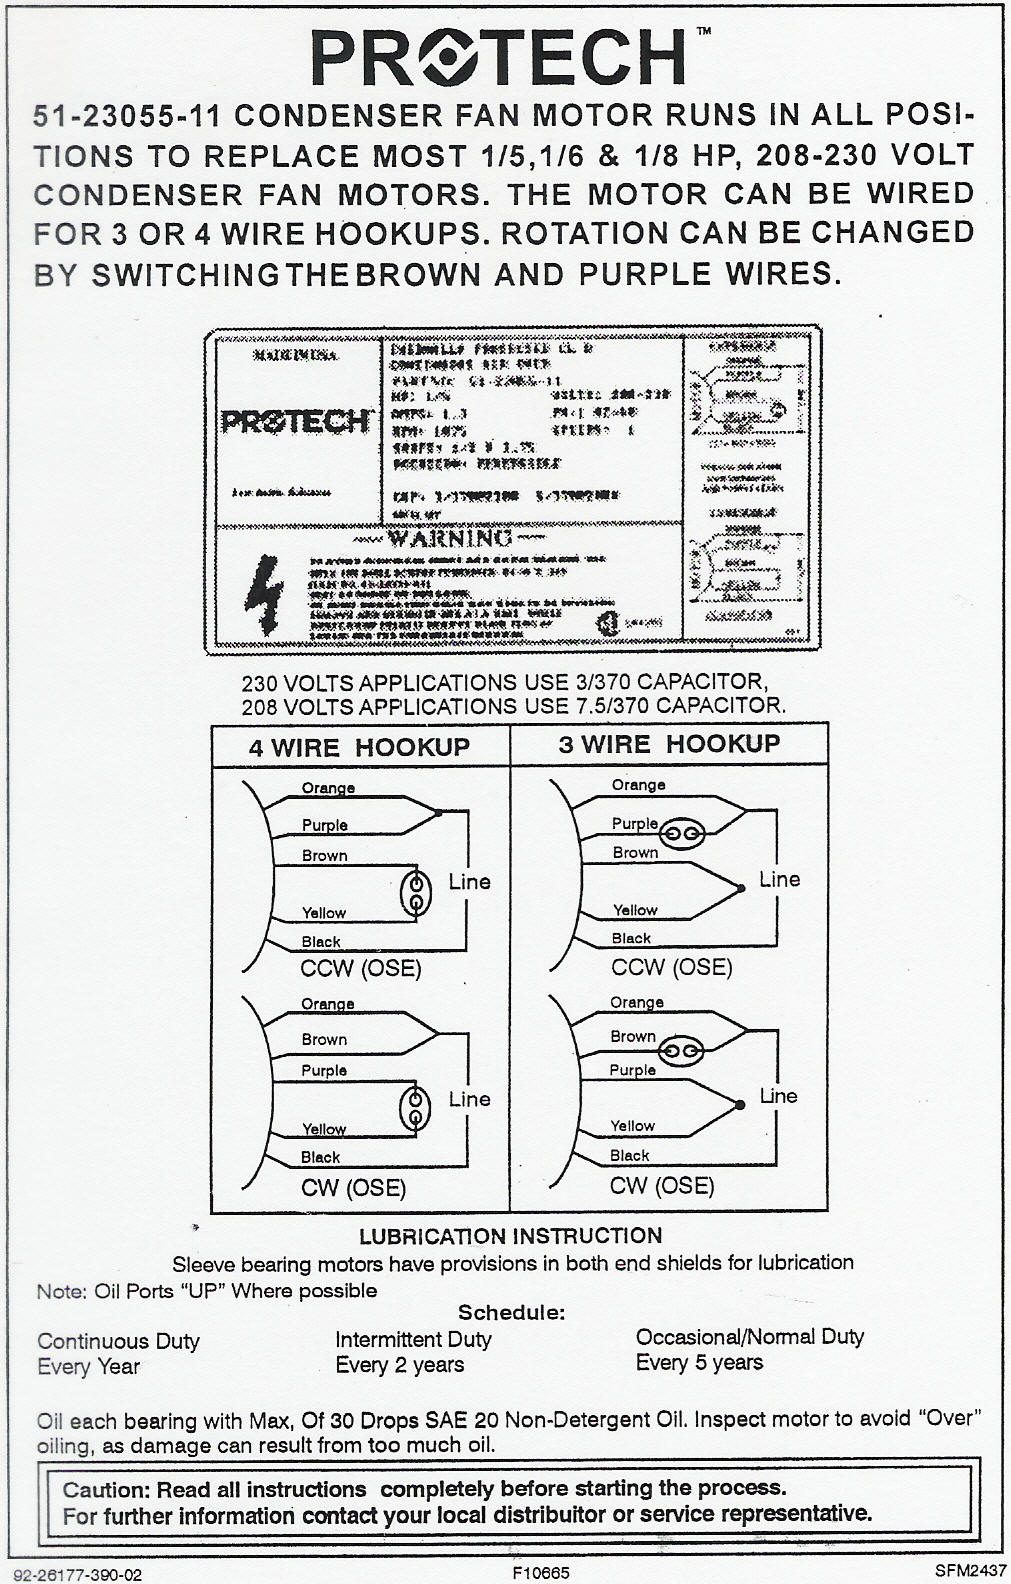 51 23055 11 wiring diagram rheem ruud condenser fan motor 51 23055 11 wiring diagram rheem air handler wiring schematic at readyjetset.co